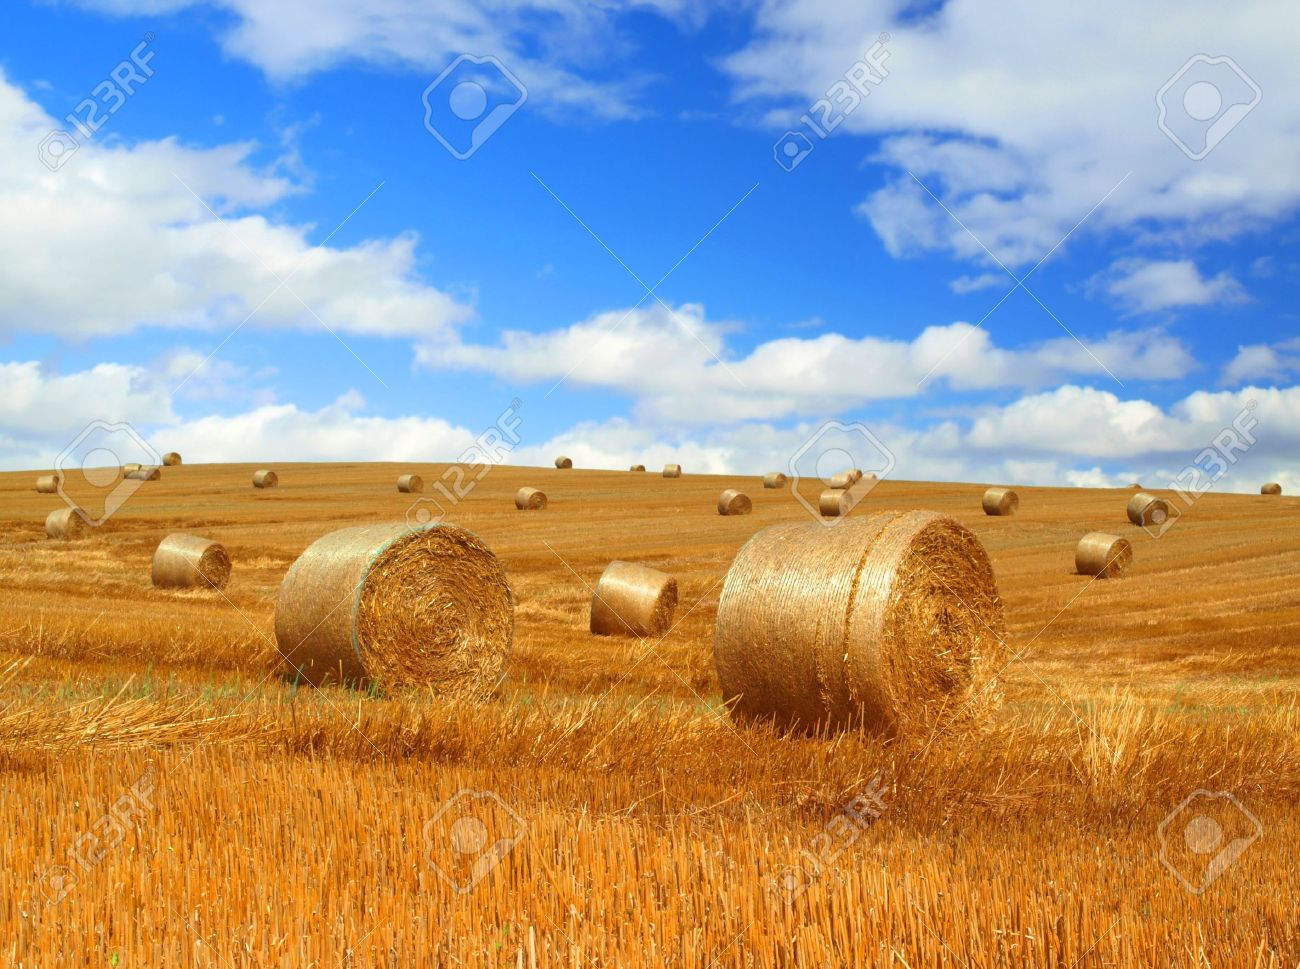 Harvested field with straw bales Stock Photo - 13342855